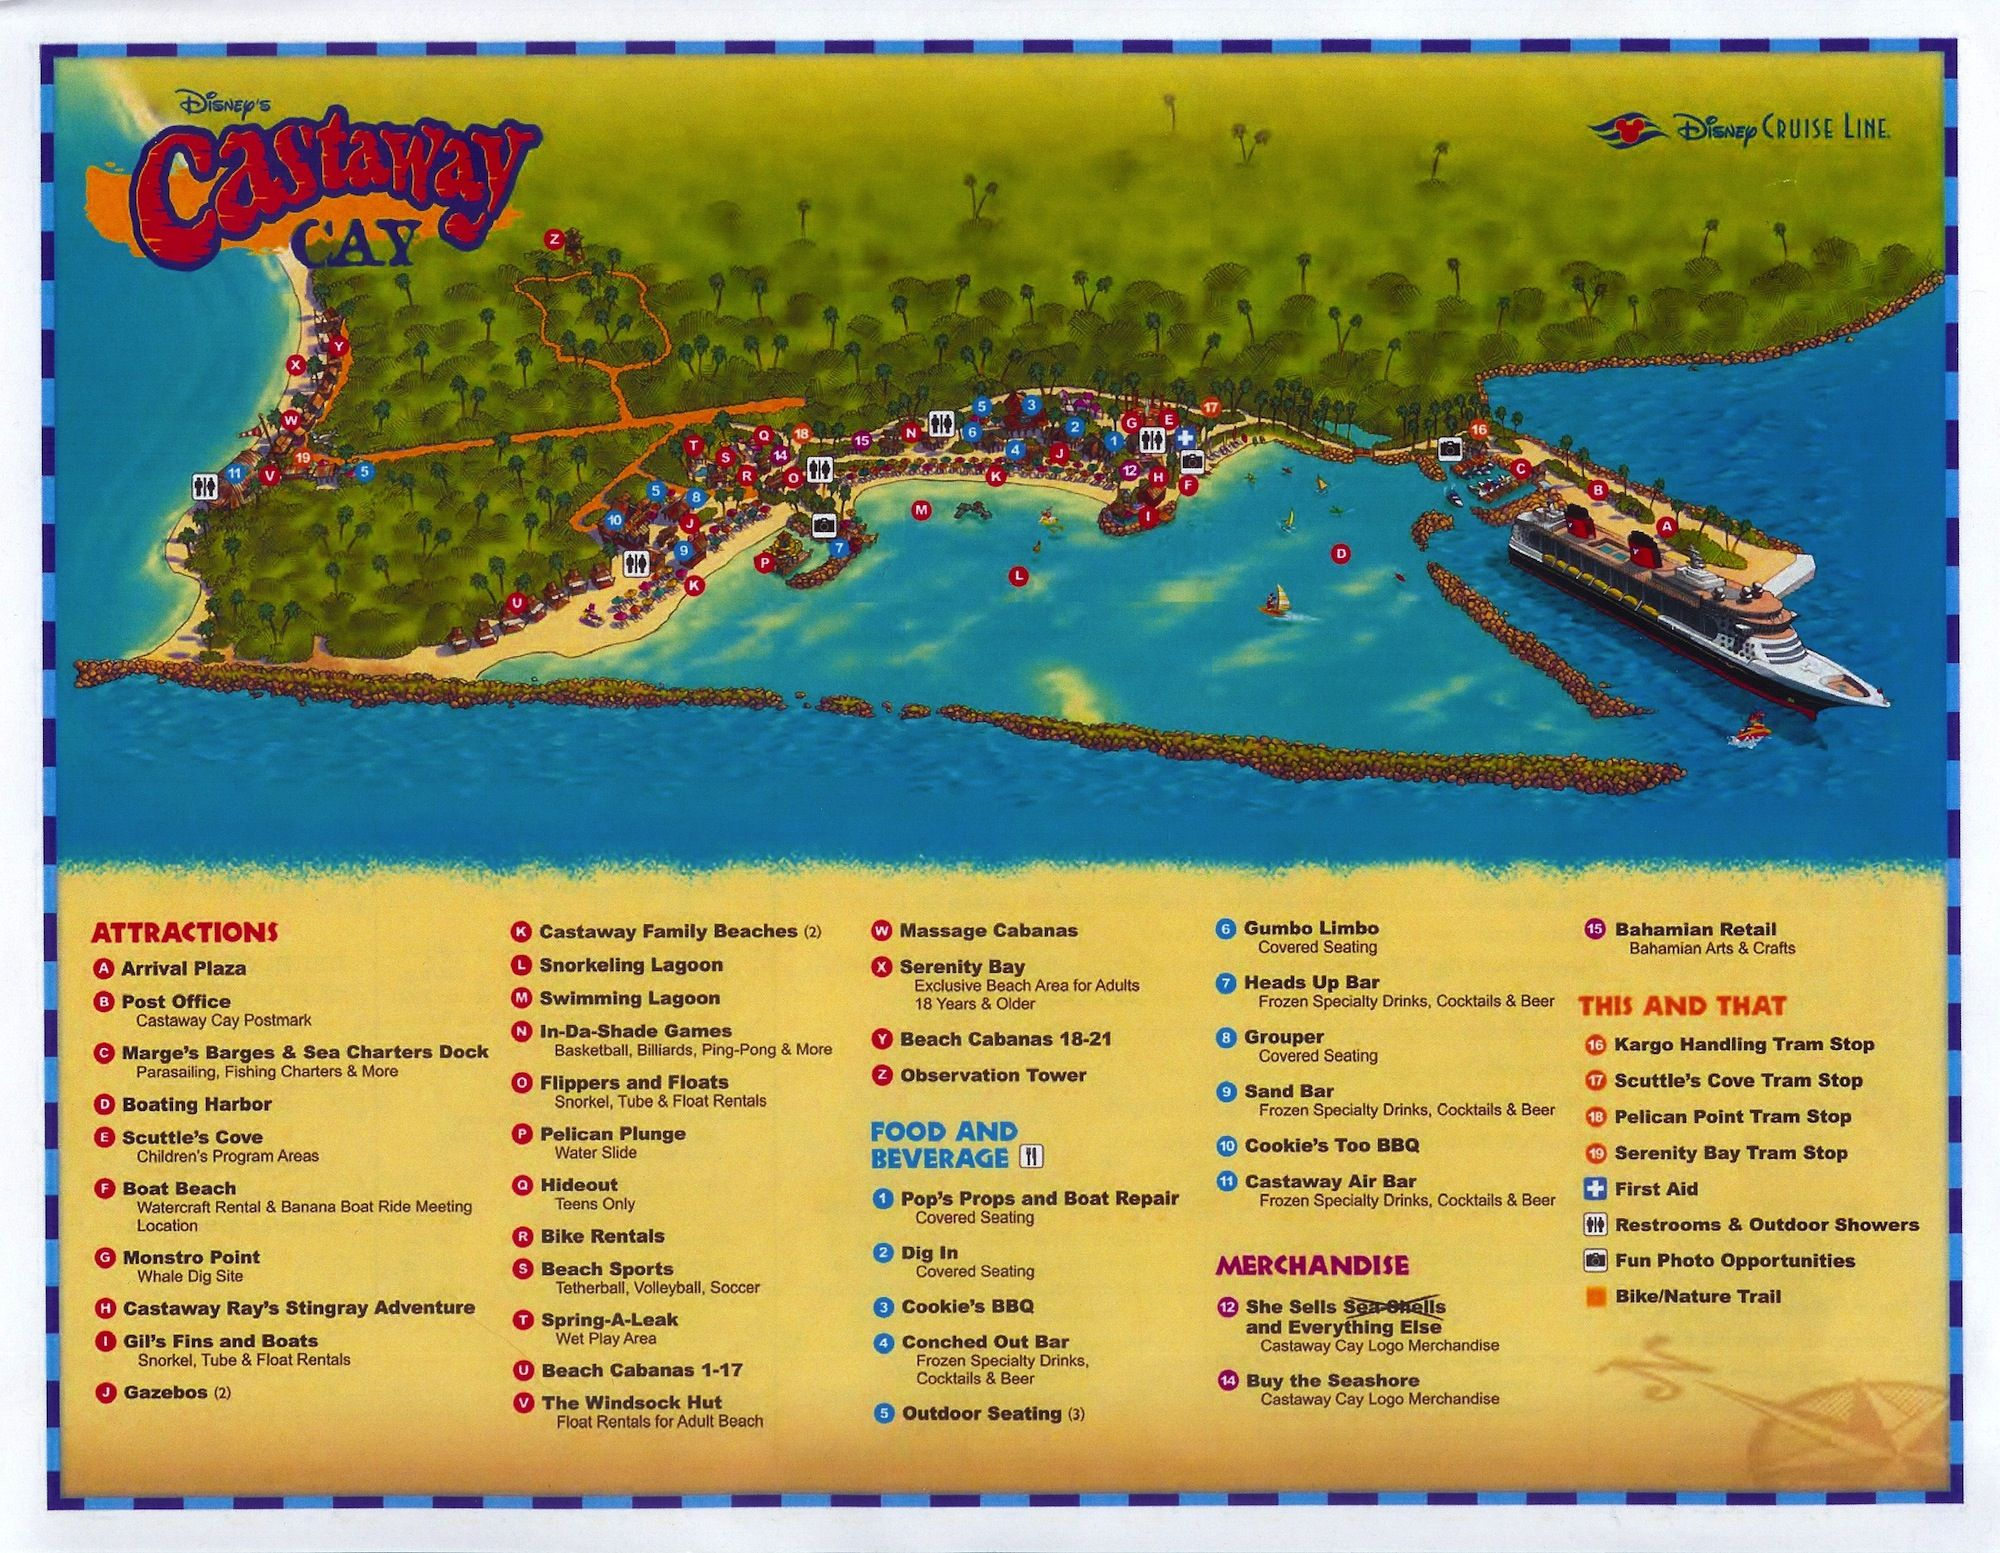 Castaway Cay is Disney's picture-perfect Caribbean island ... on